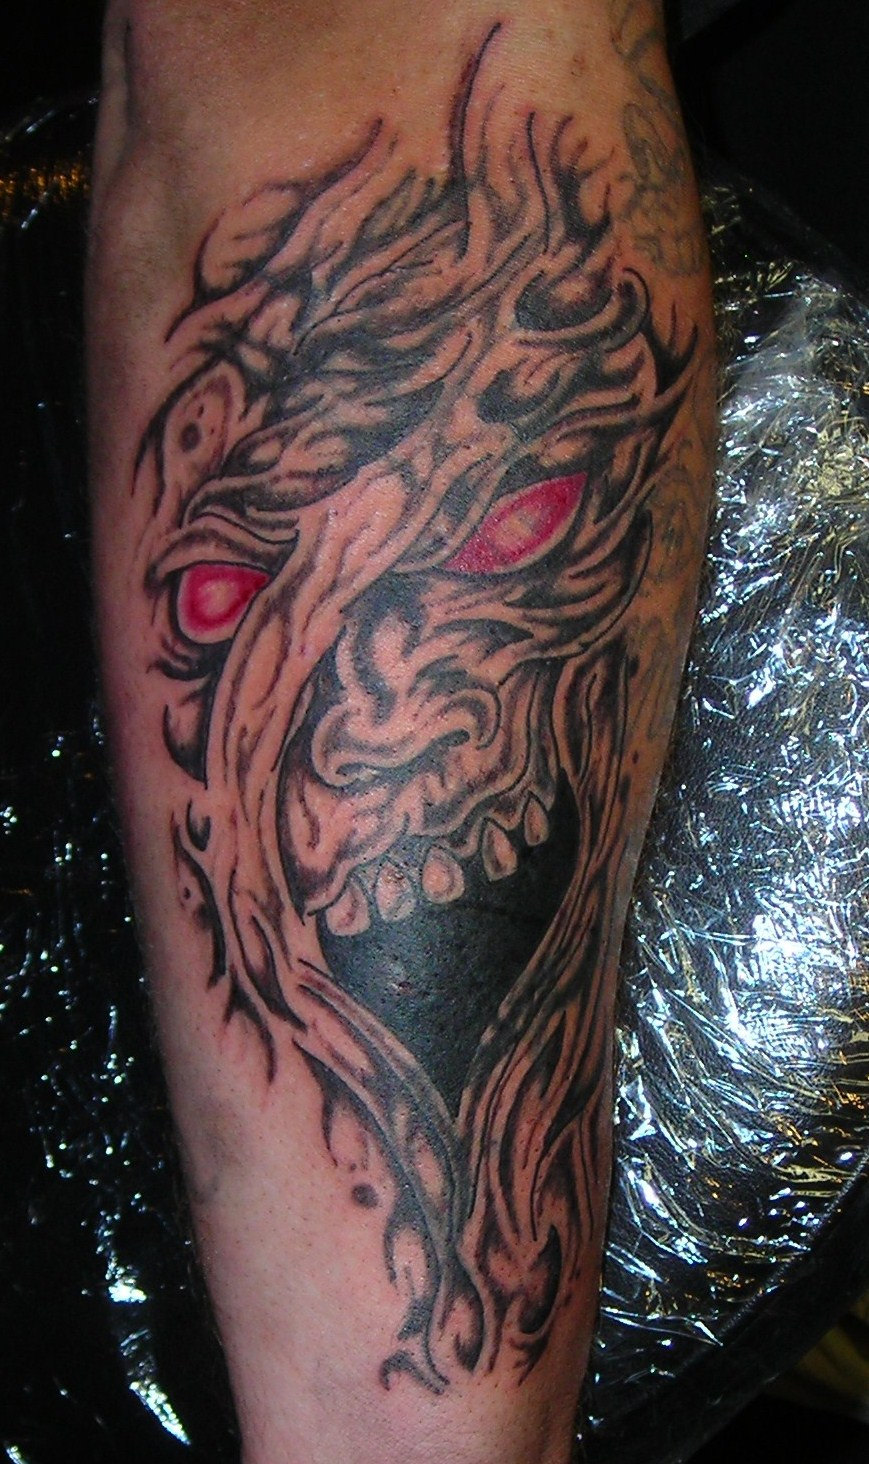 Evil face cover up tattoo by lucidpetroglyphs666 on deviantart for Evil faces tattoos